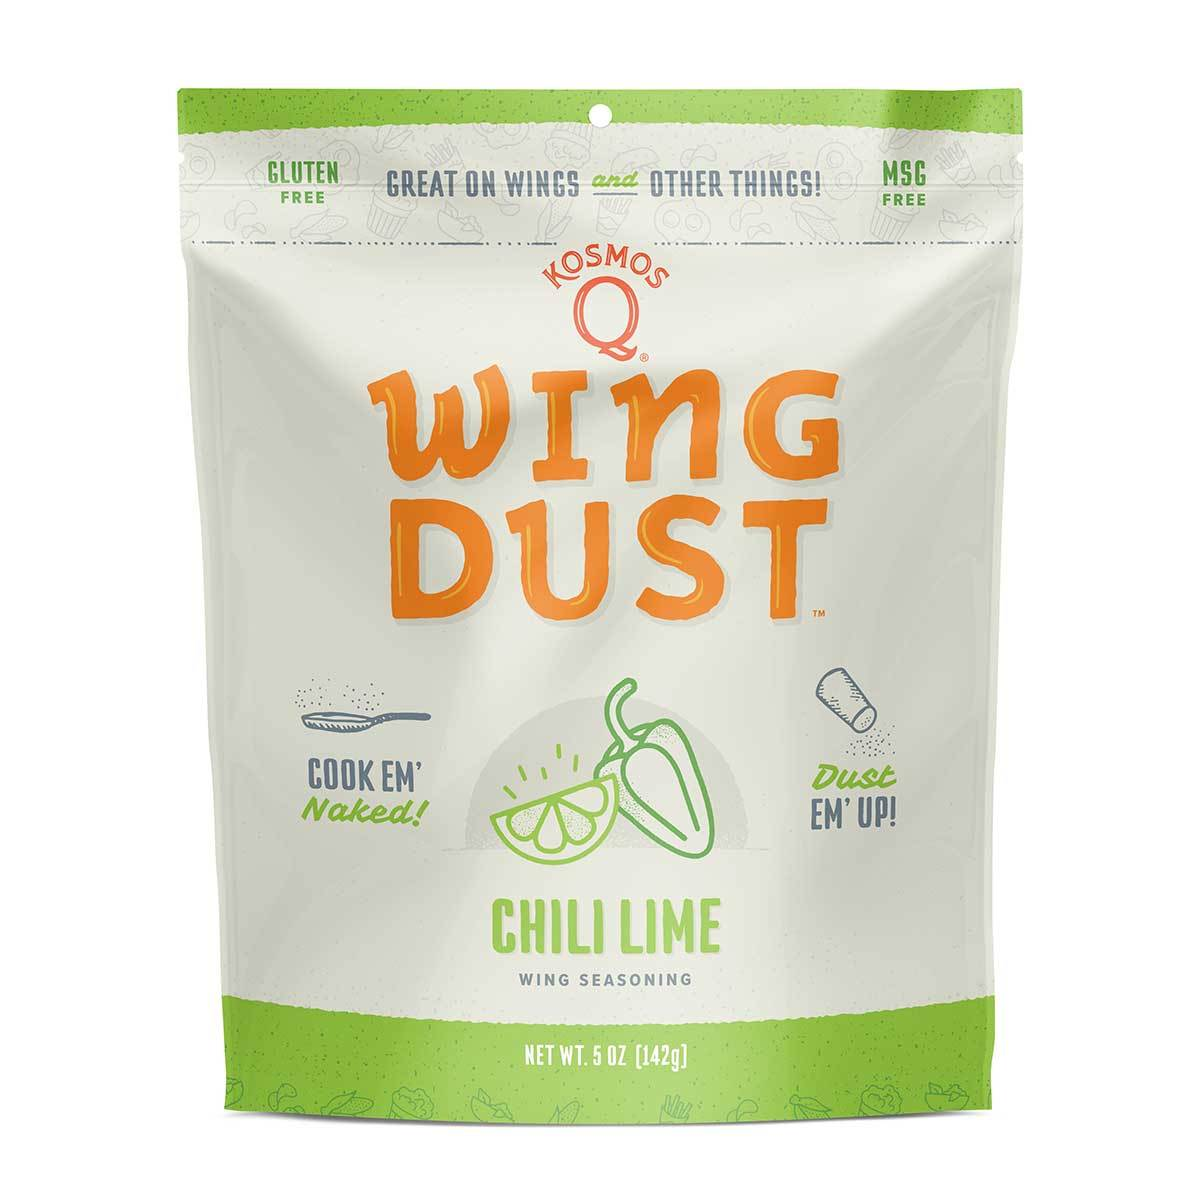 Kosmo's Wing Dust - Chili Lime